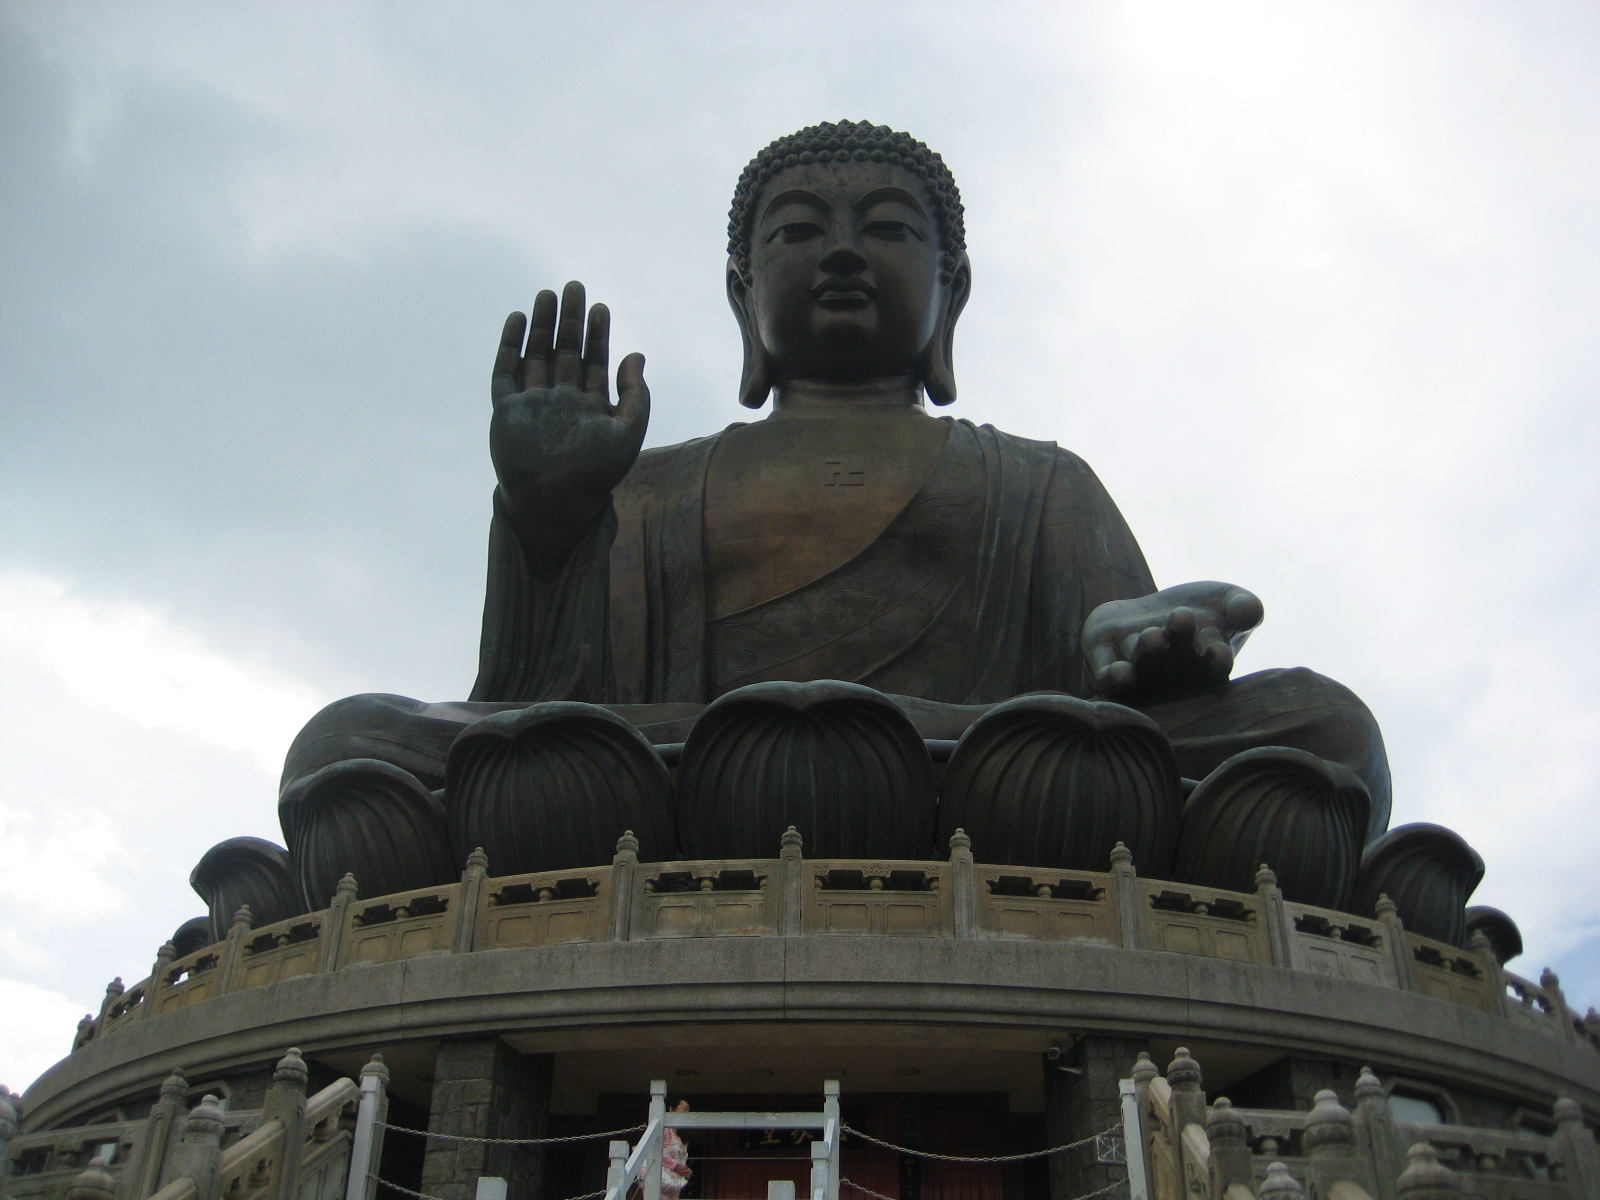 The Giant Buddha in Ngong Ping, Hong Kong